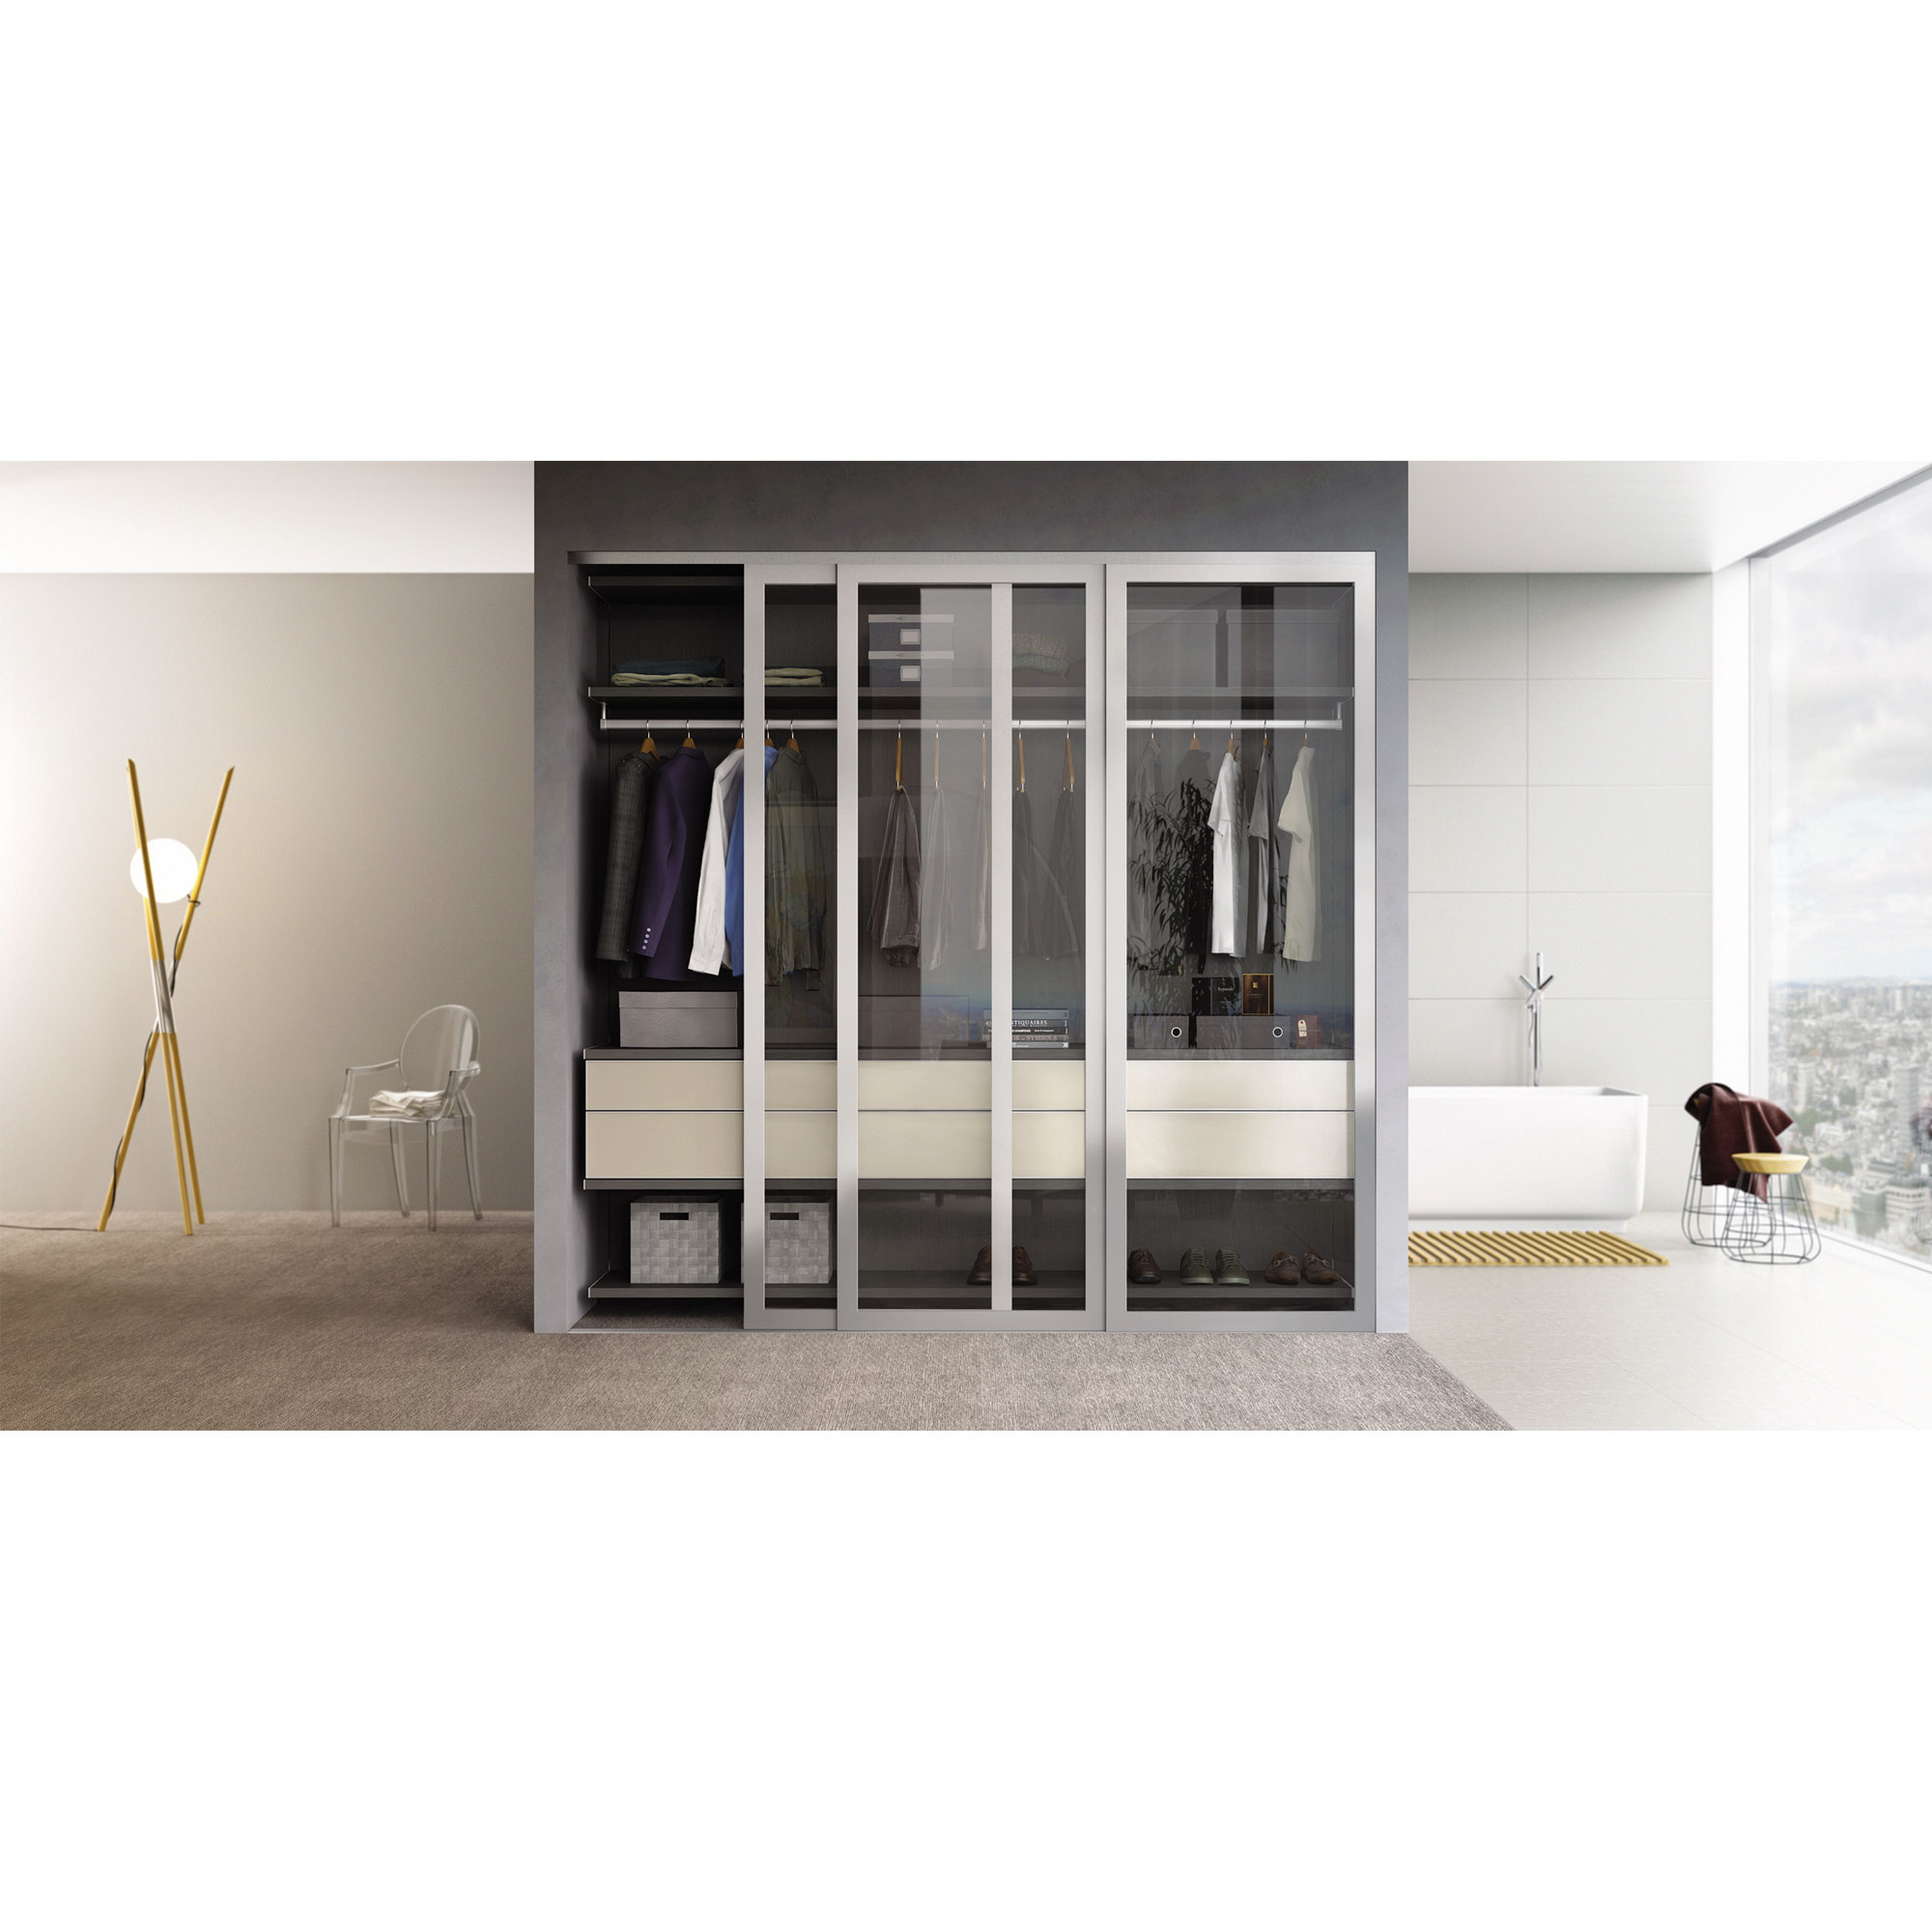 installation wardrobe ideas mirrored oak gasket framed mirror closet and raton trends polished panel boca sasg shaker sliding marvelous aluminum edge of doors bathroom in stunning